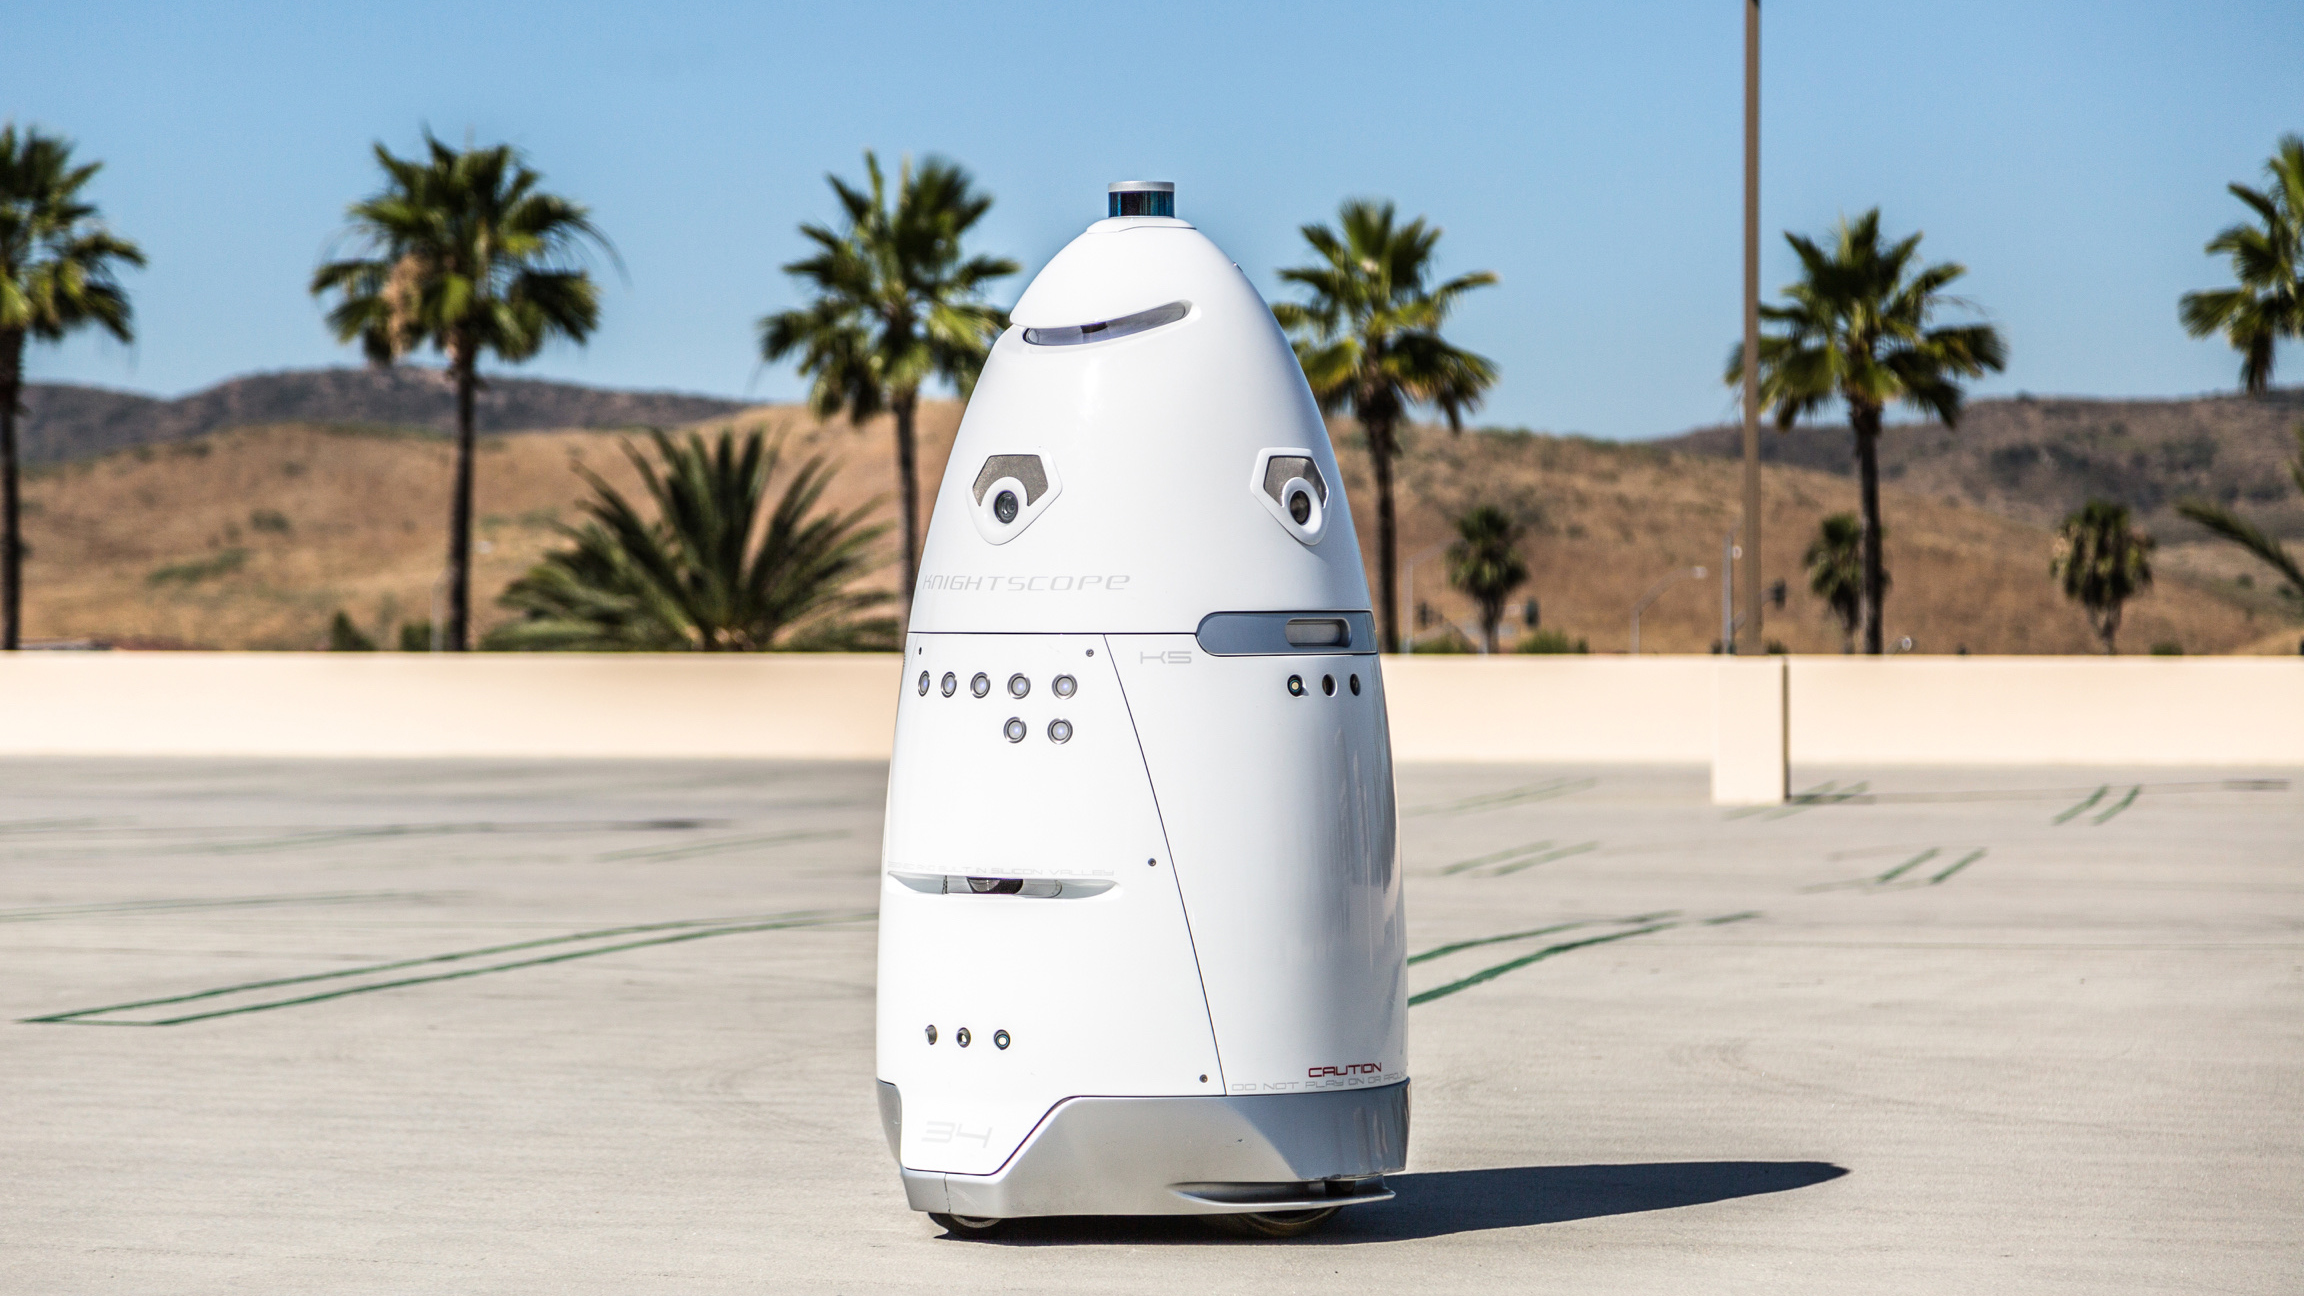 A Knightscope Security Robot Is Being Used To Shoo Away Homeless